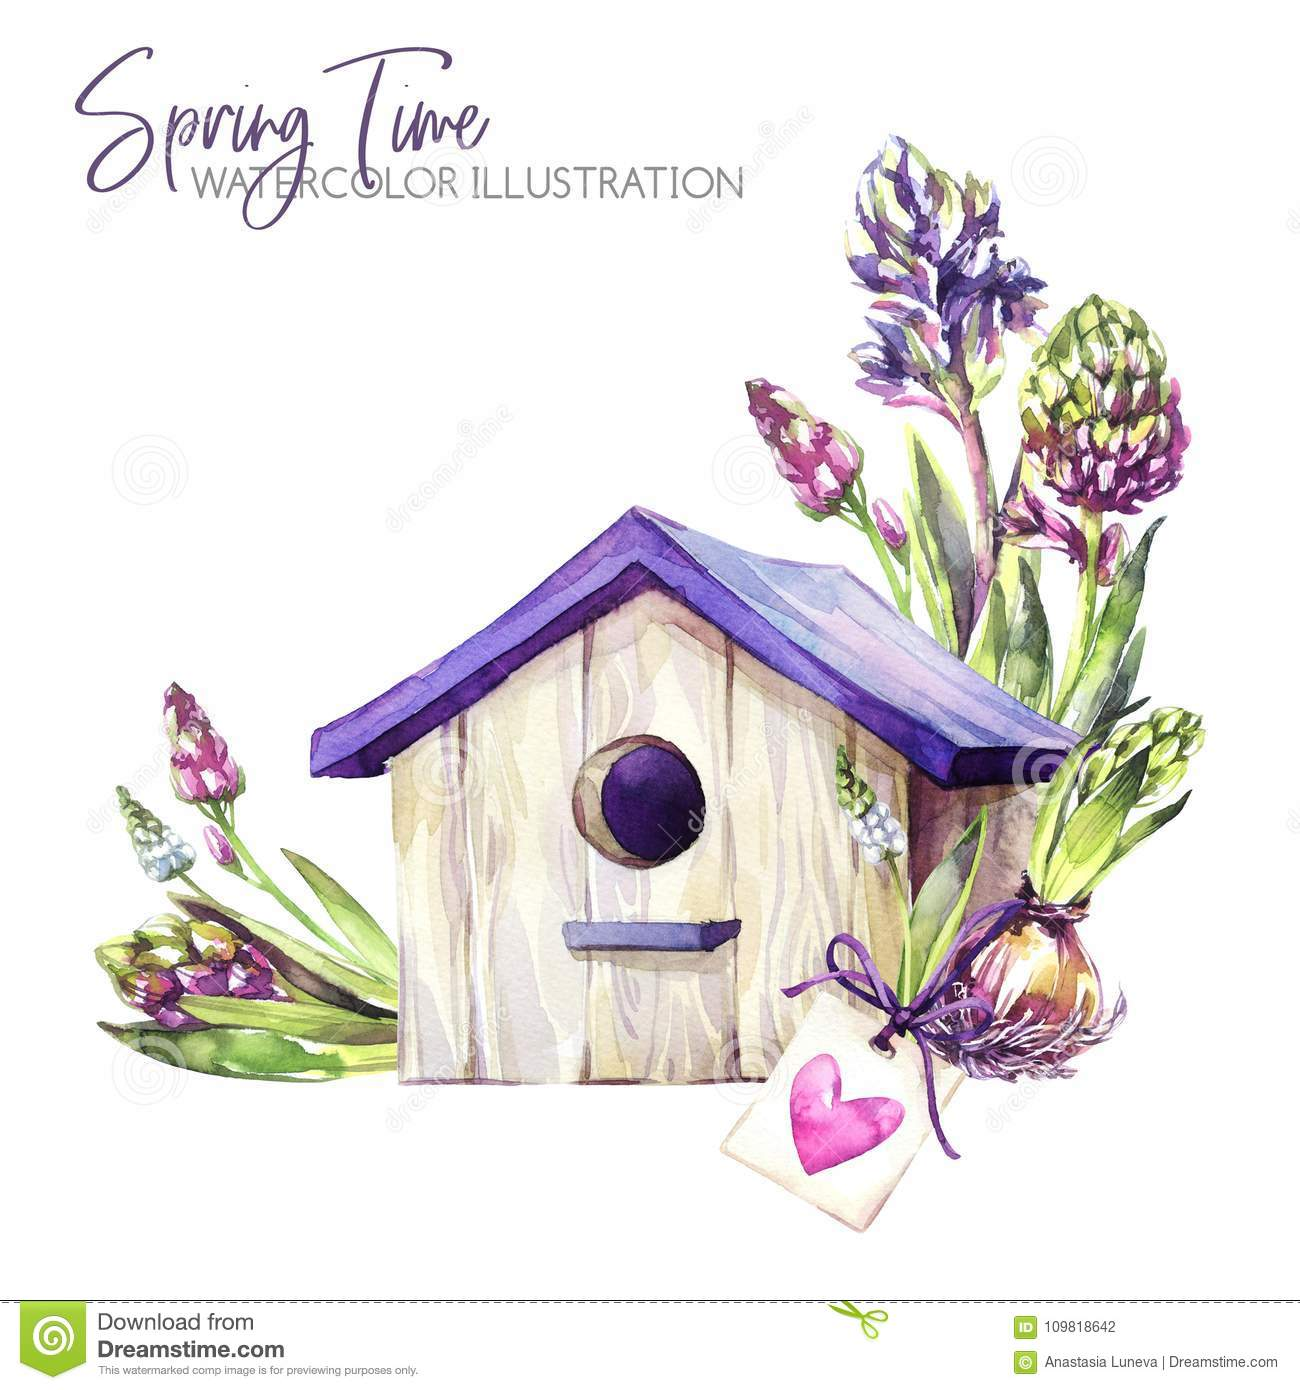 Download Watercolor Illustration Birdhouse With Hyacinth Seedlings And Tag Rustic Objects Spring Collection